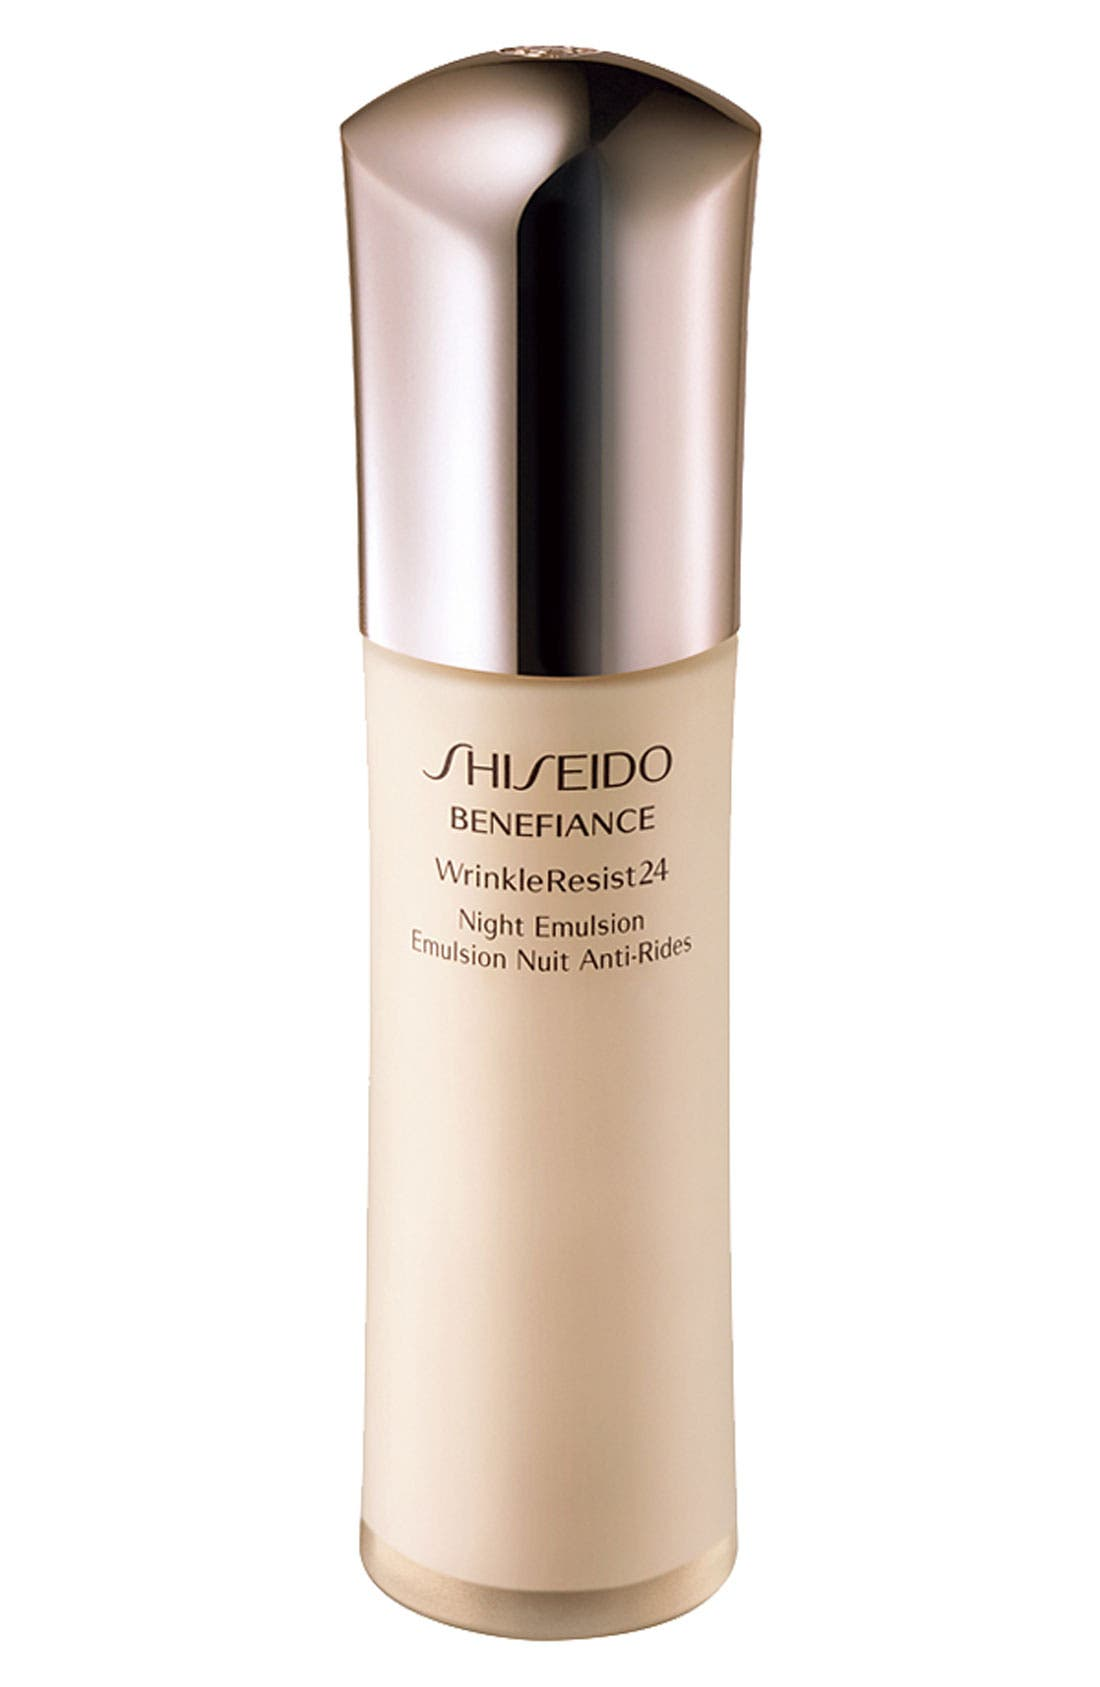 Shiseido 'Benefiance WrinkleResist24' Night Emulsion